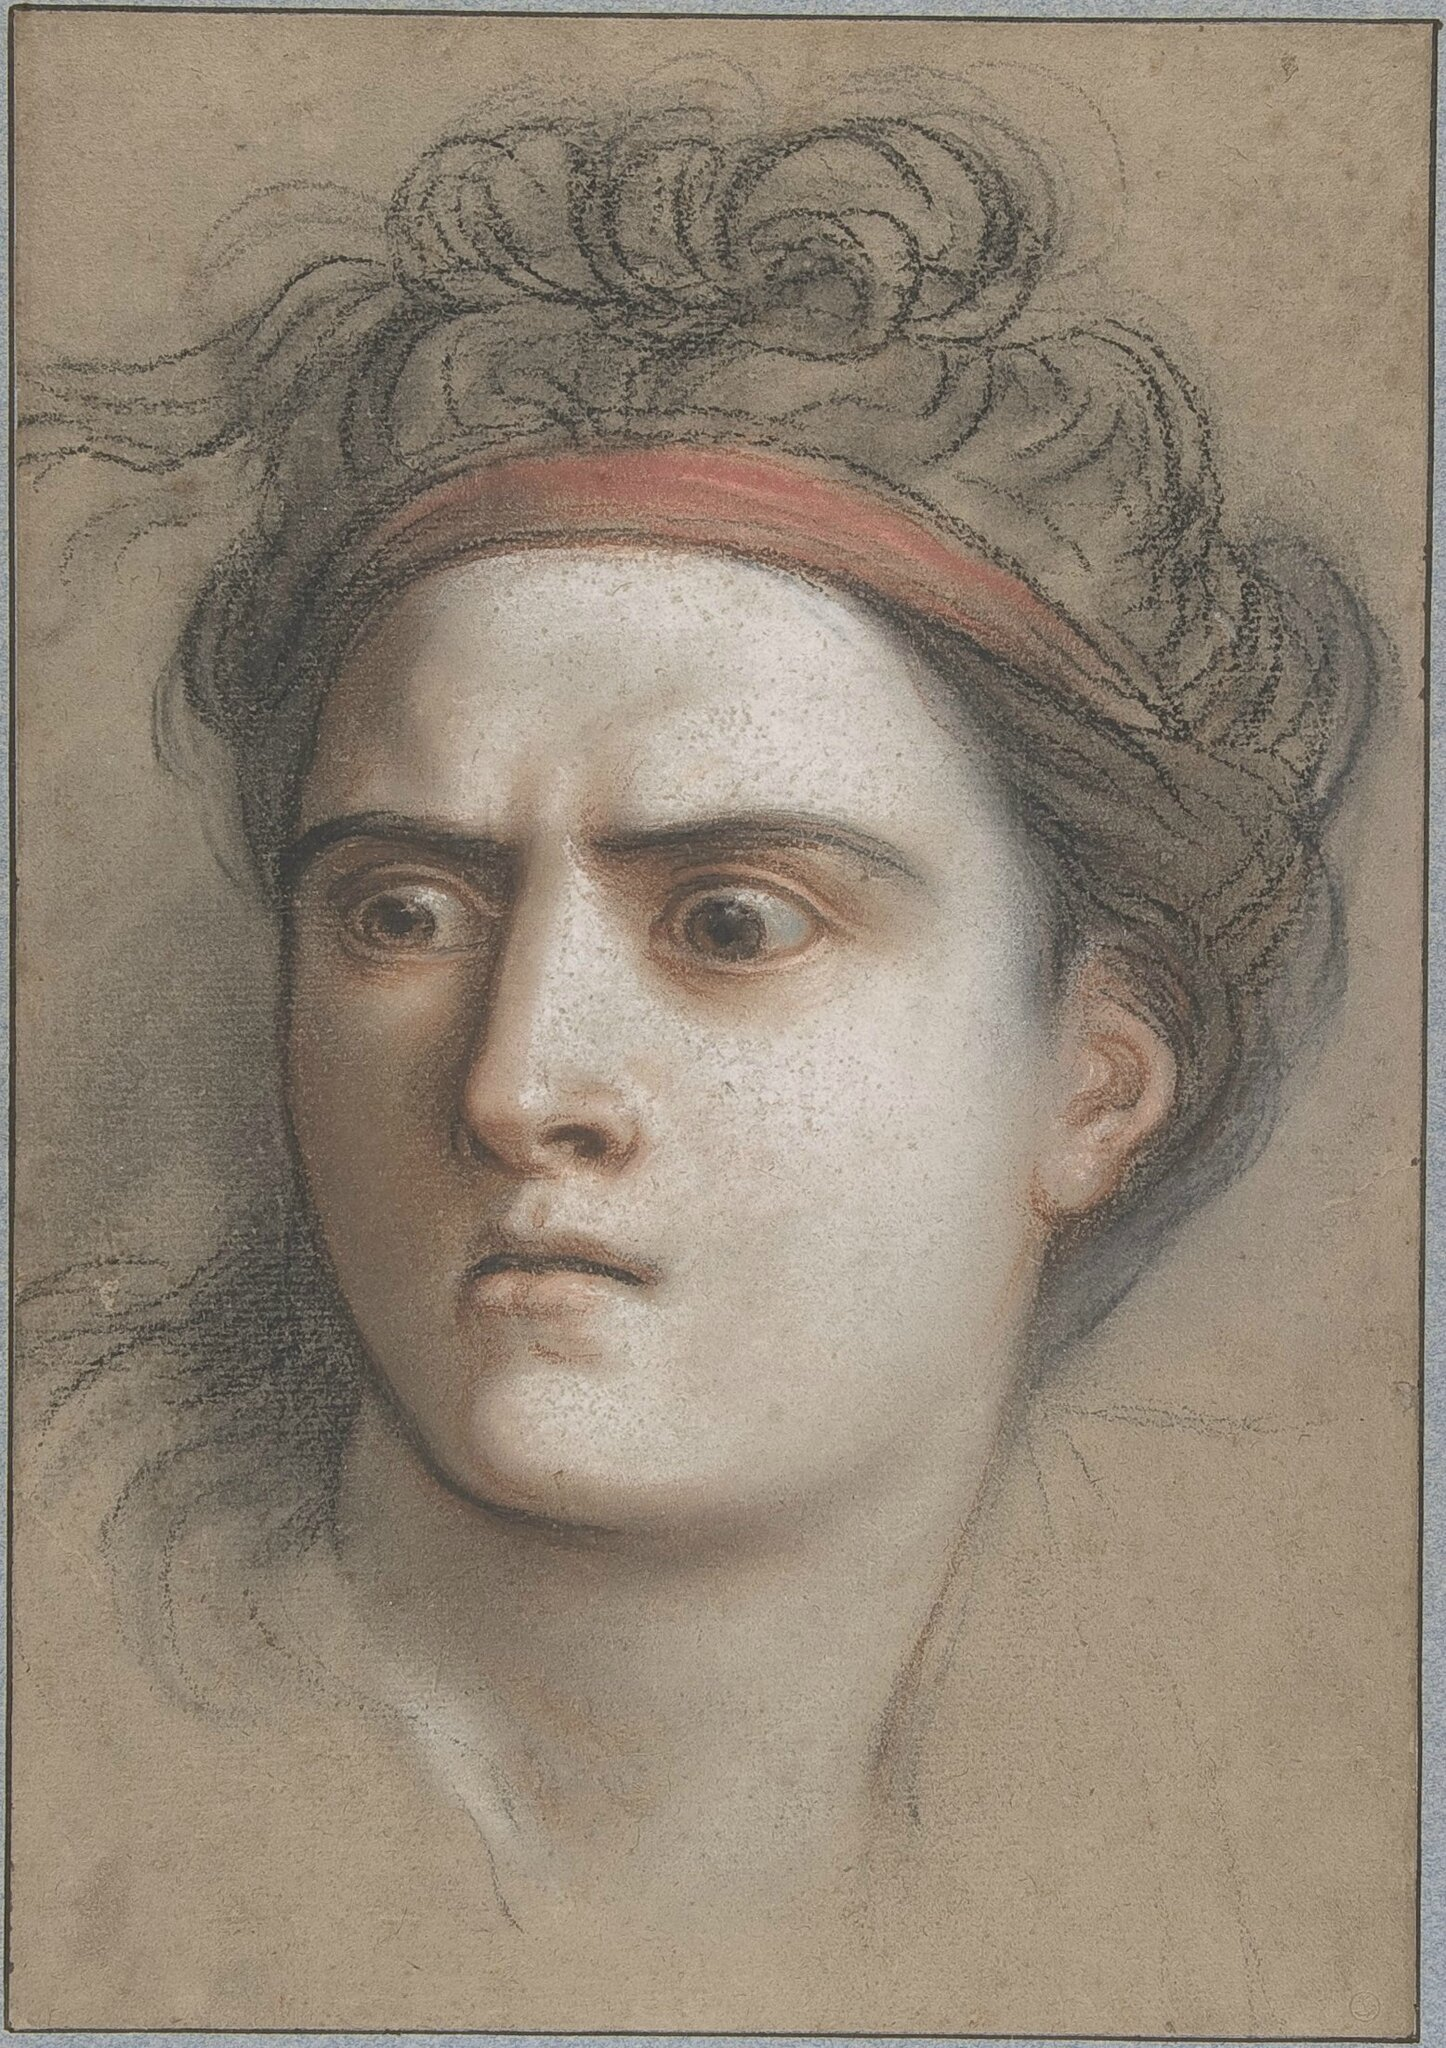 'About Face: Human Expression on Paper' on view at the Metropolitan Museum of Art